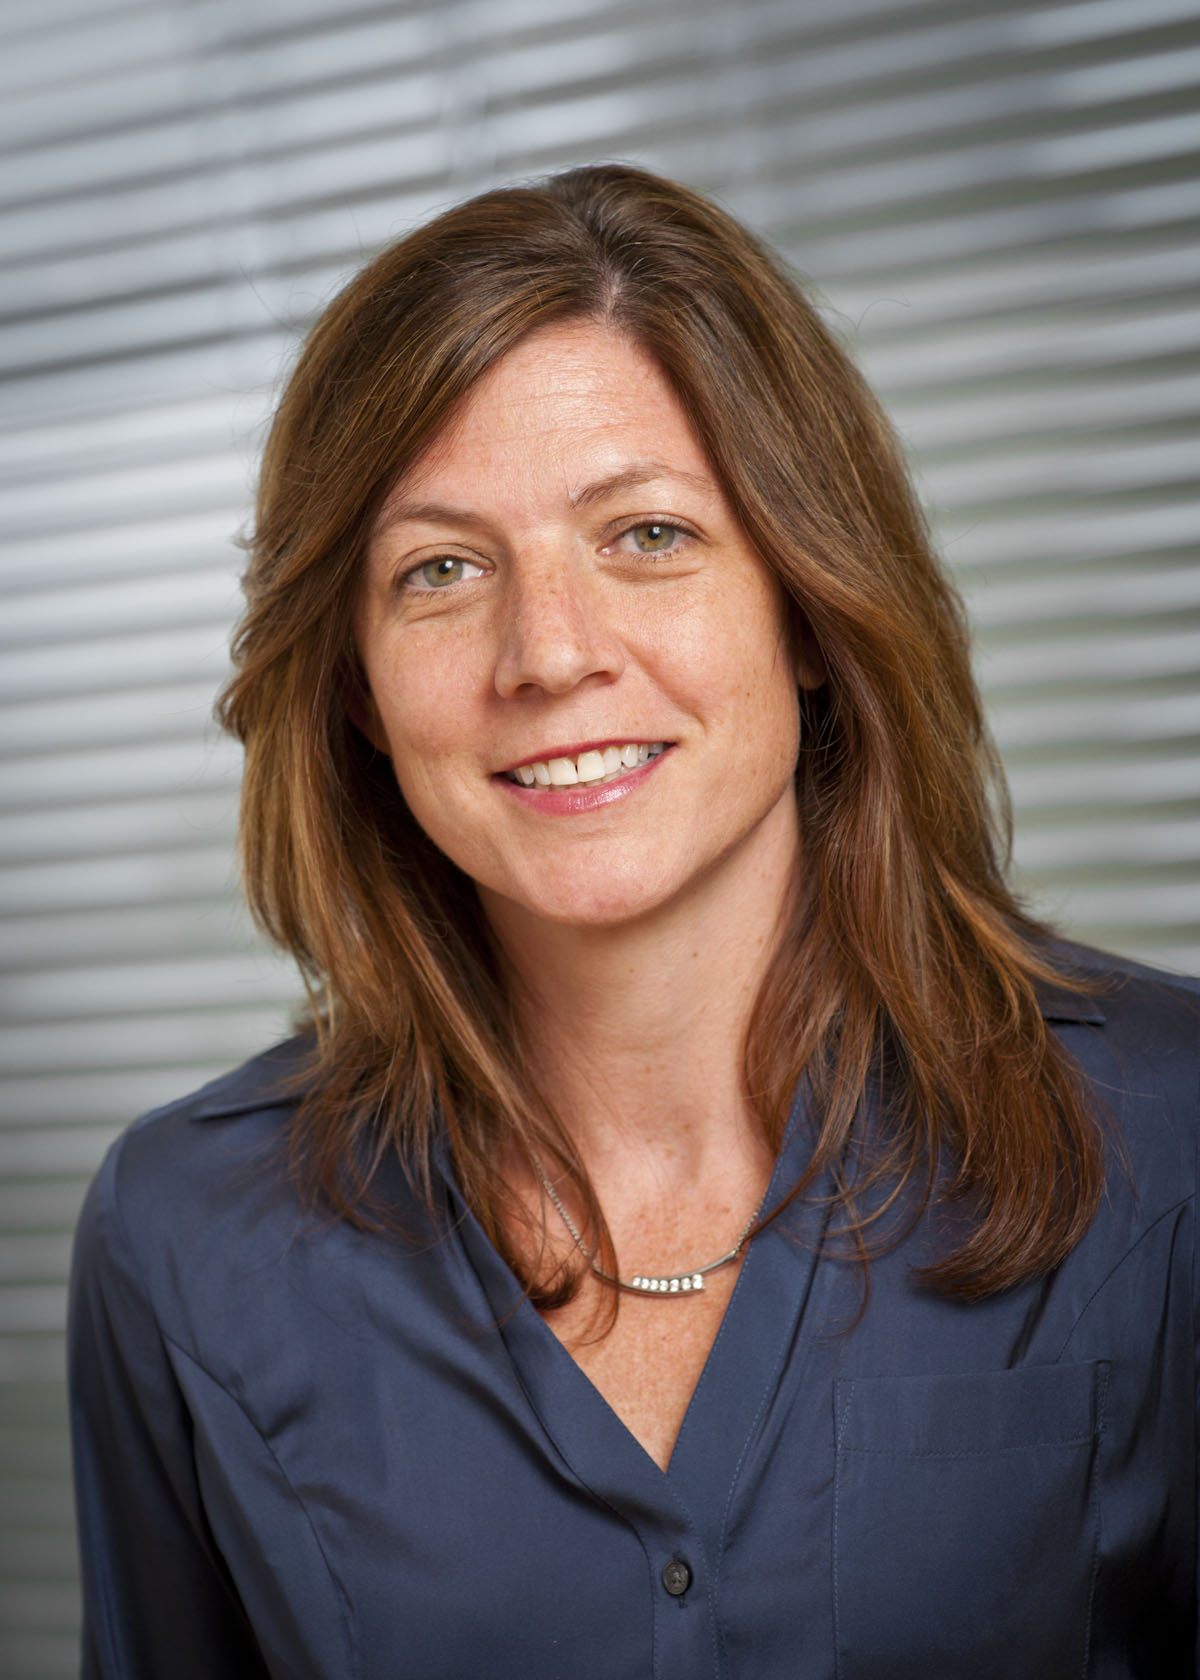 5. Stacy Coen-Genzyme